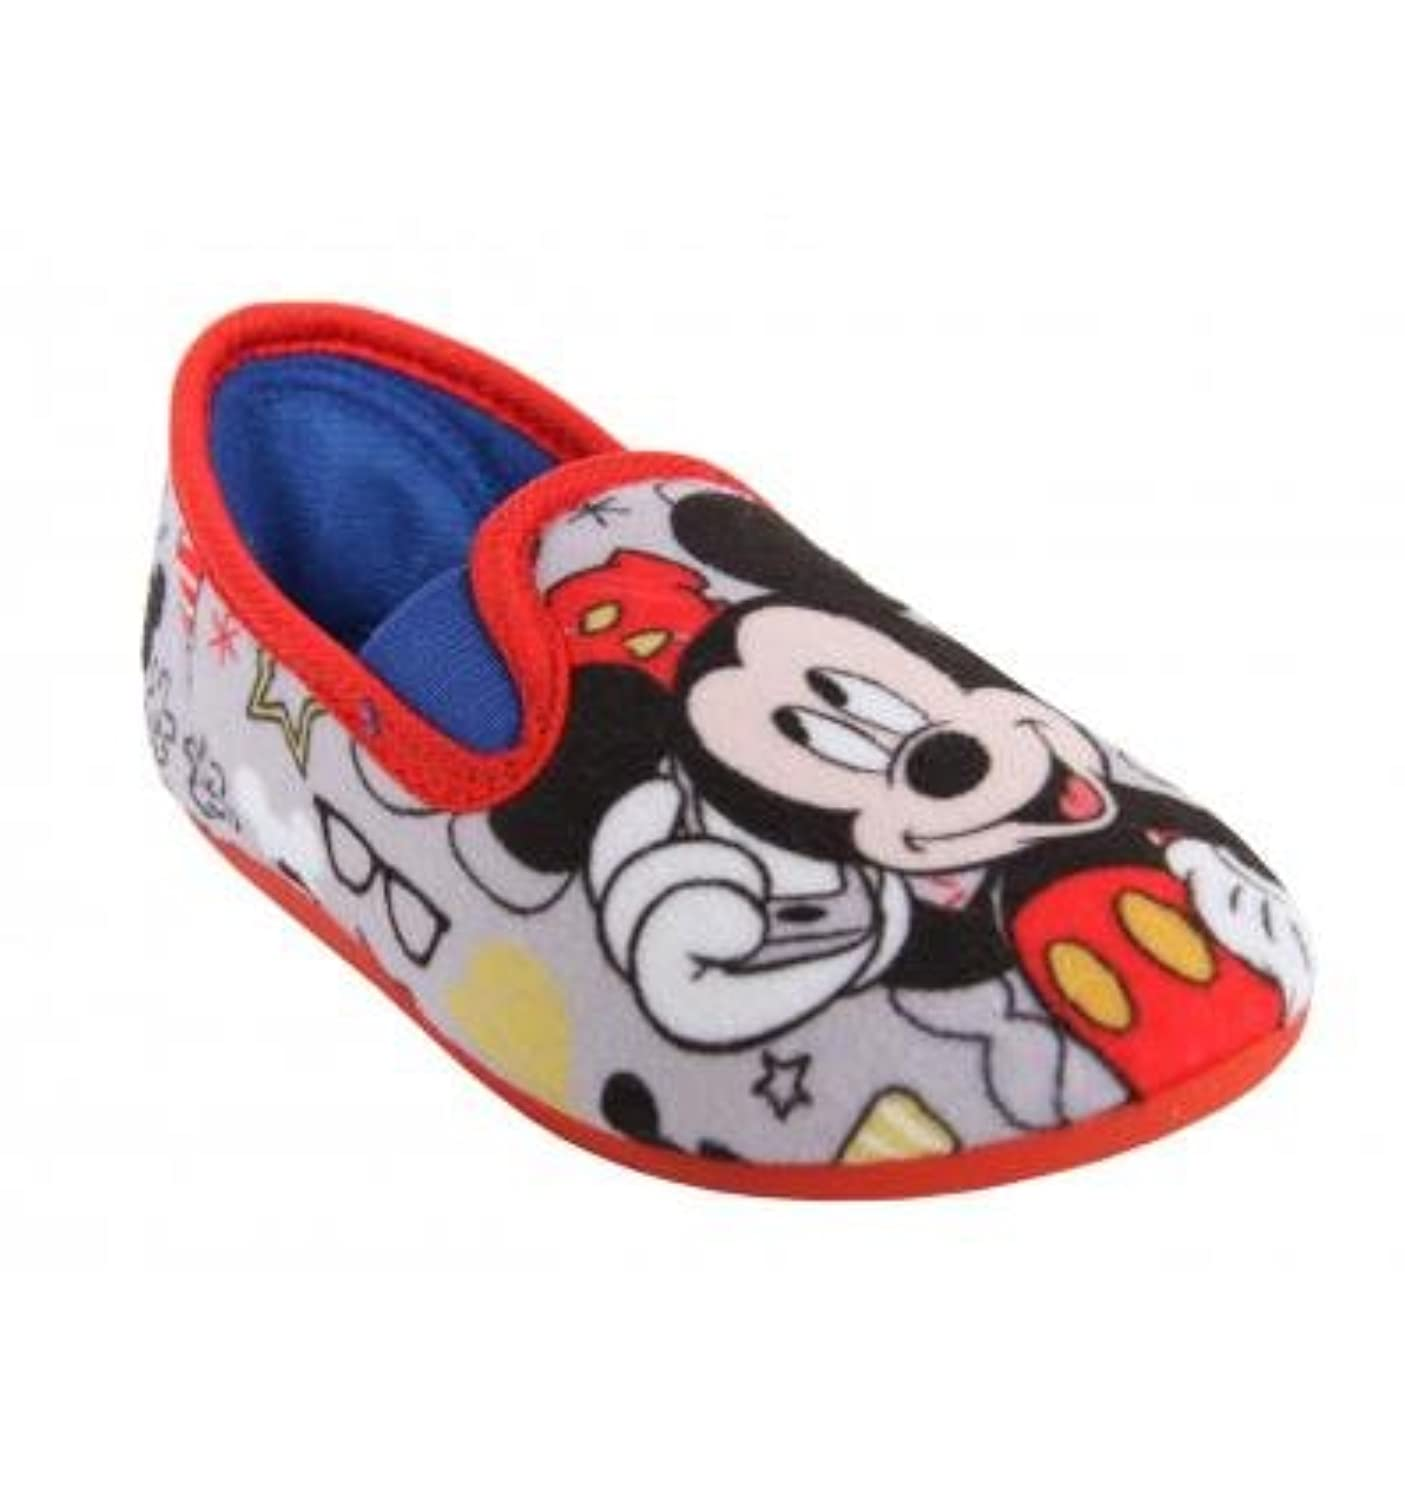 Boy House slipers DISNEY 2300-338 AZUL Size 25